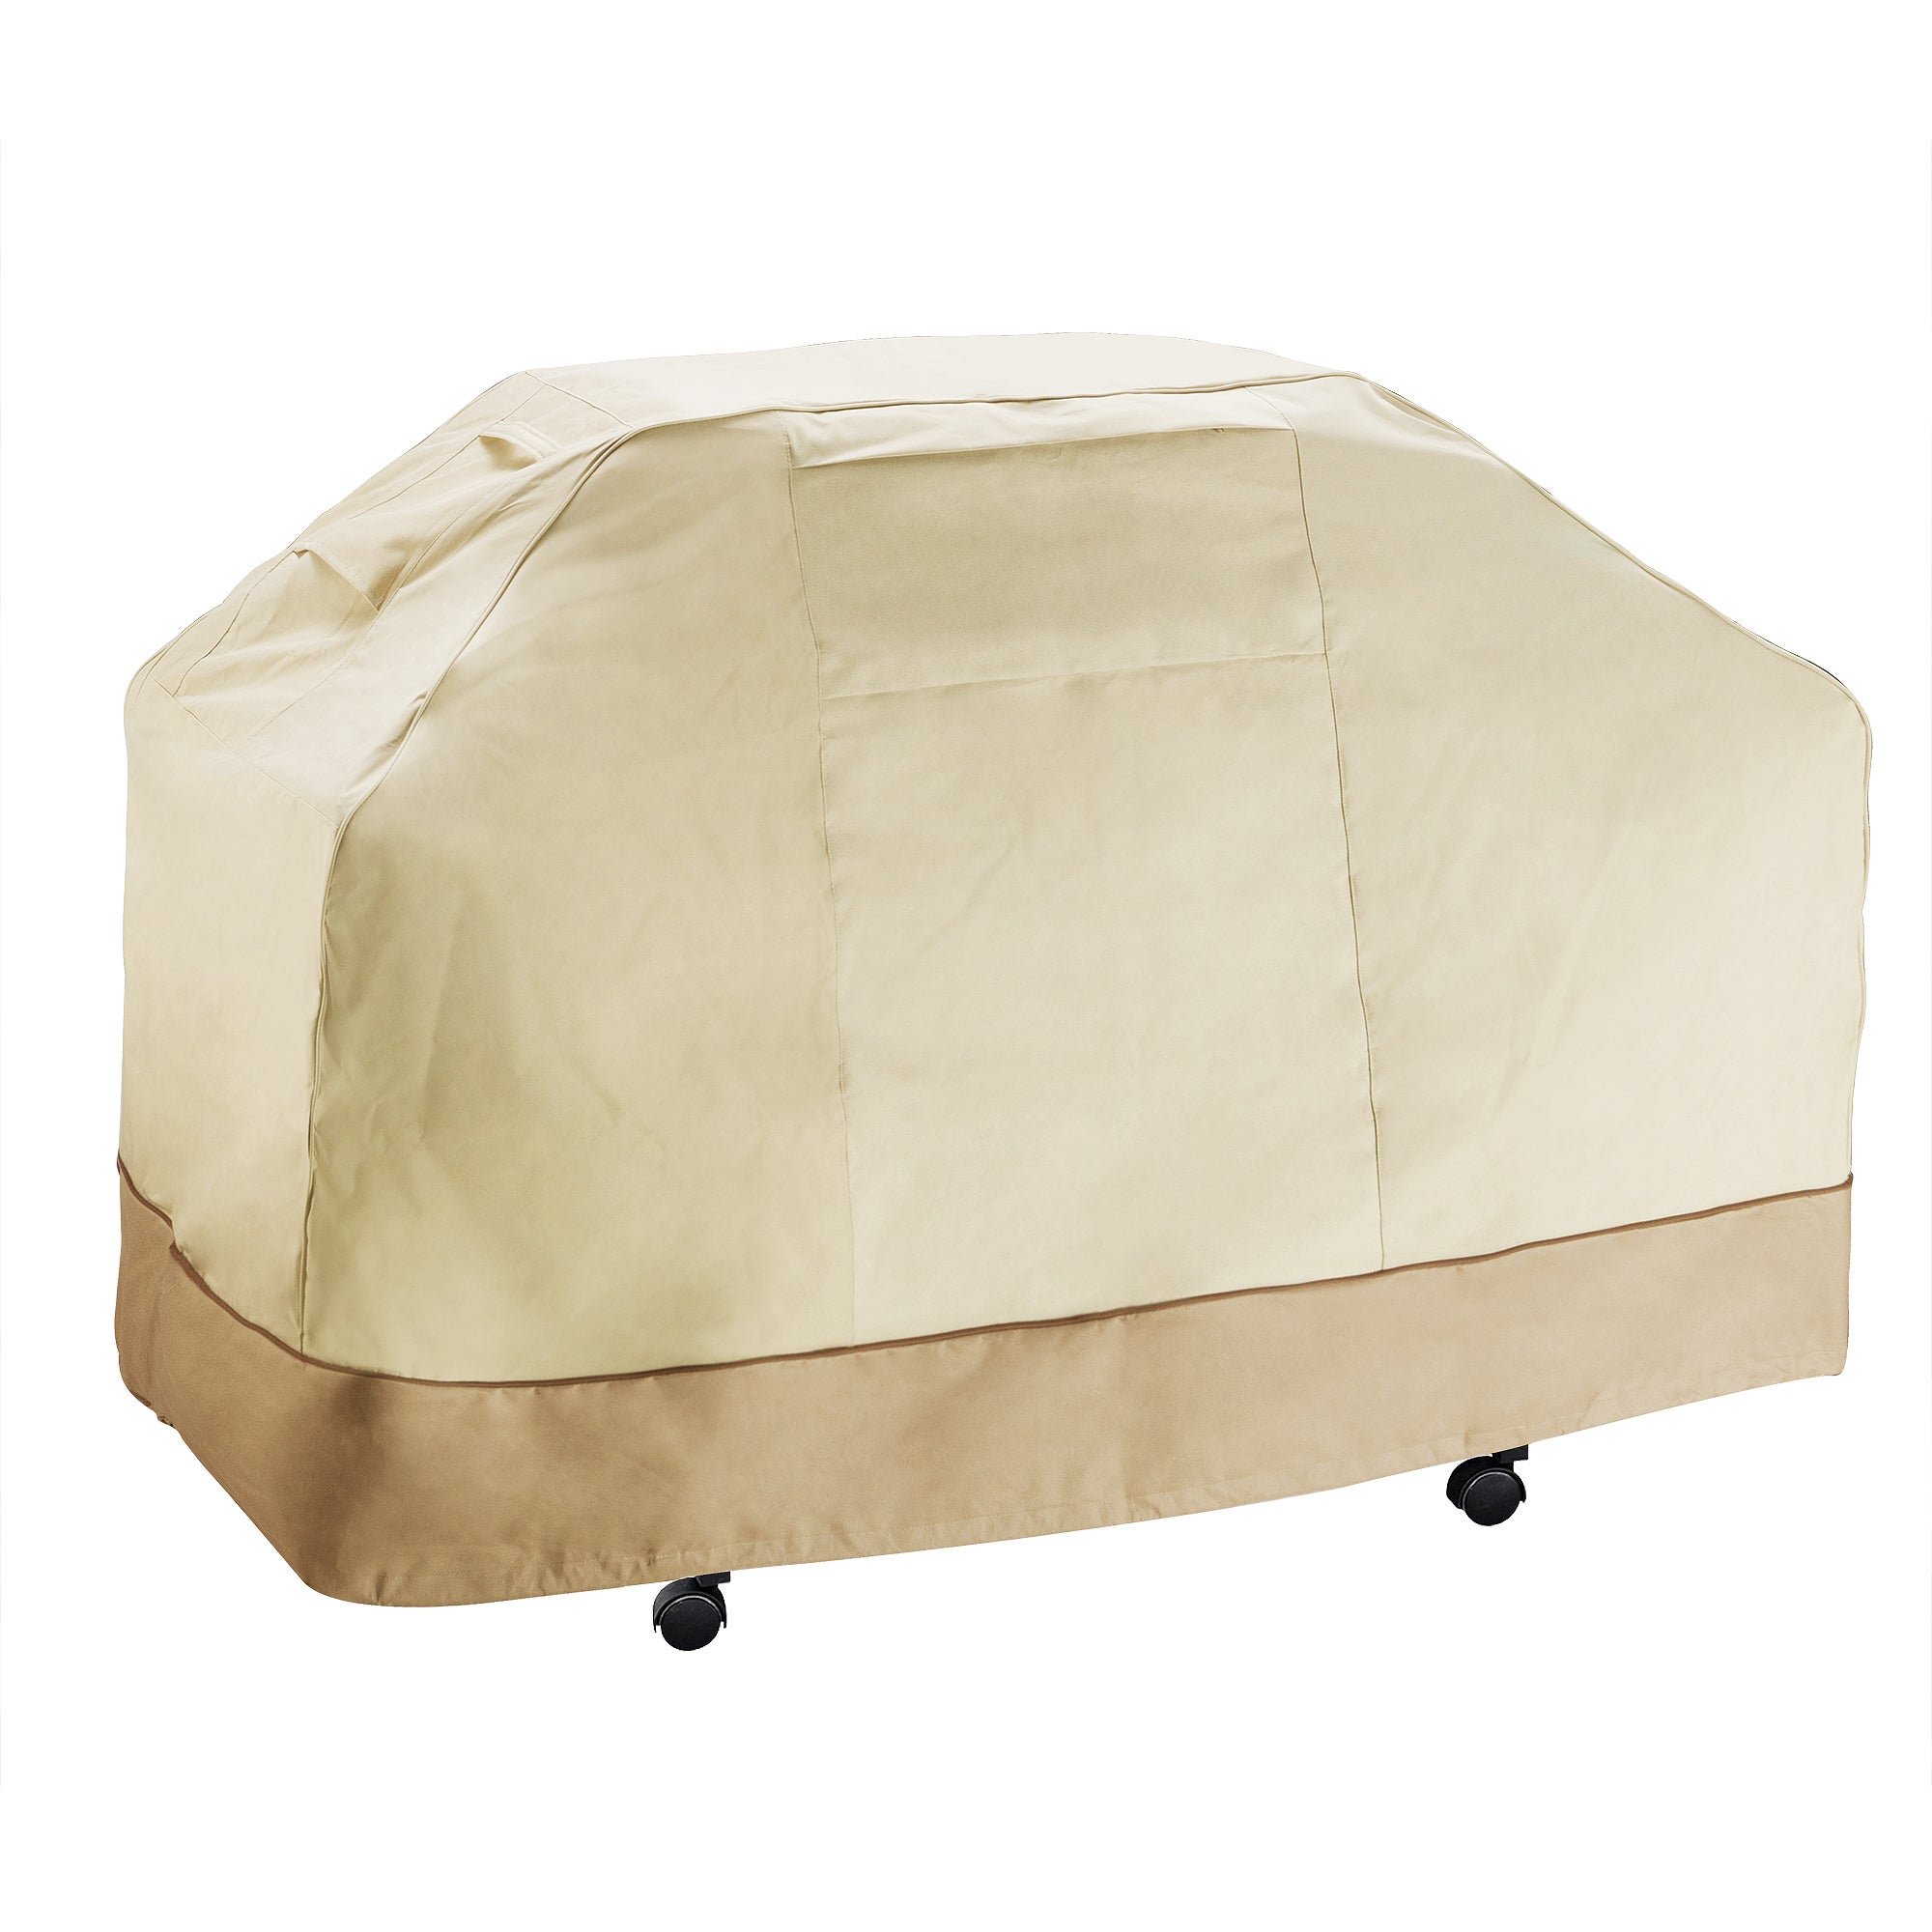 International Villacera High Quality Grill Cover Beige an...